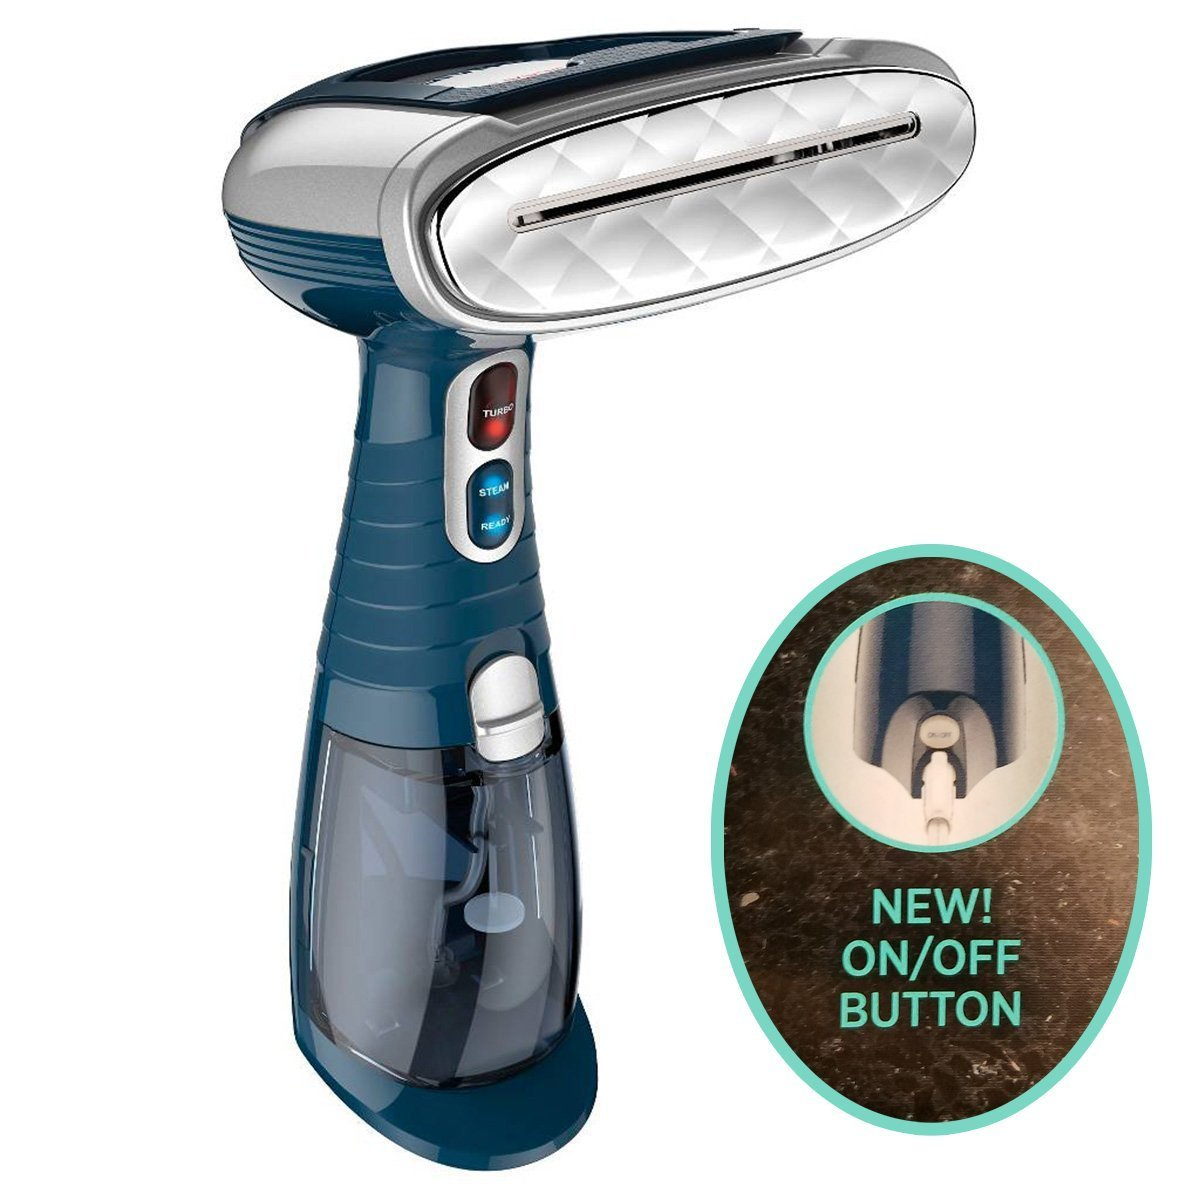 Conair Turbo ExtremeSteam